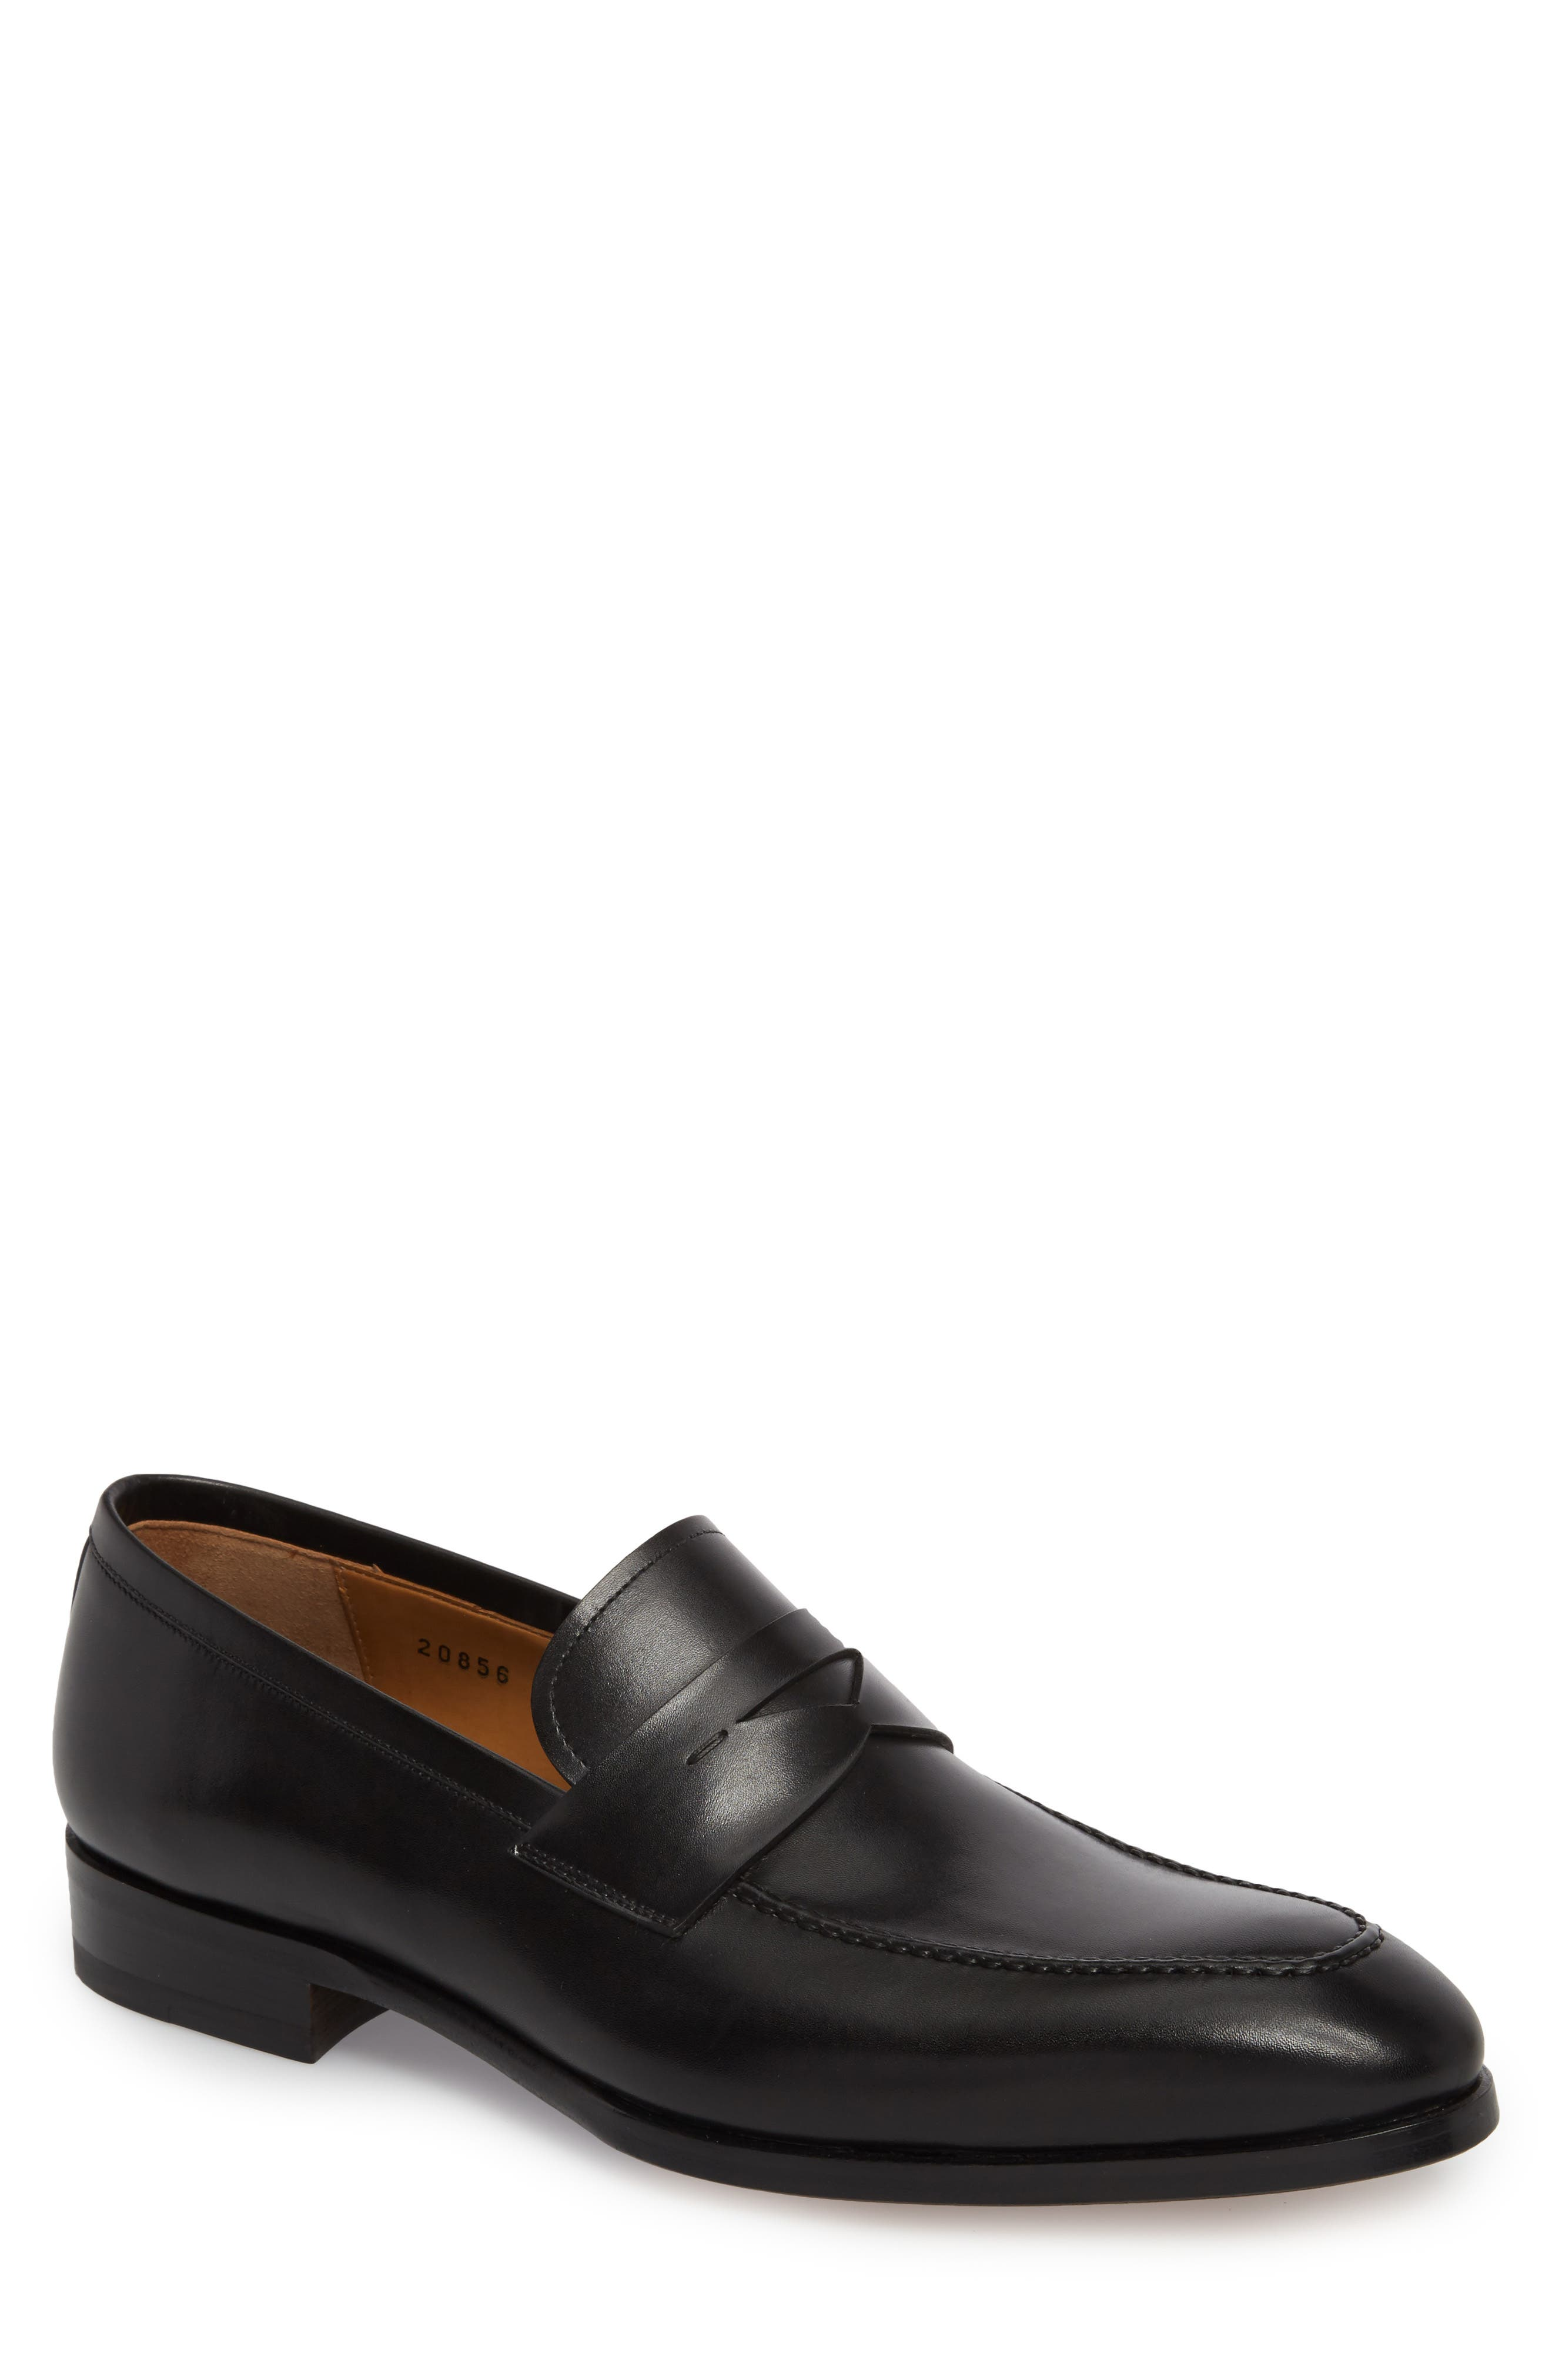 Rolly Apron Toe Penny Loafer, Main, color, BLACK LEATHER